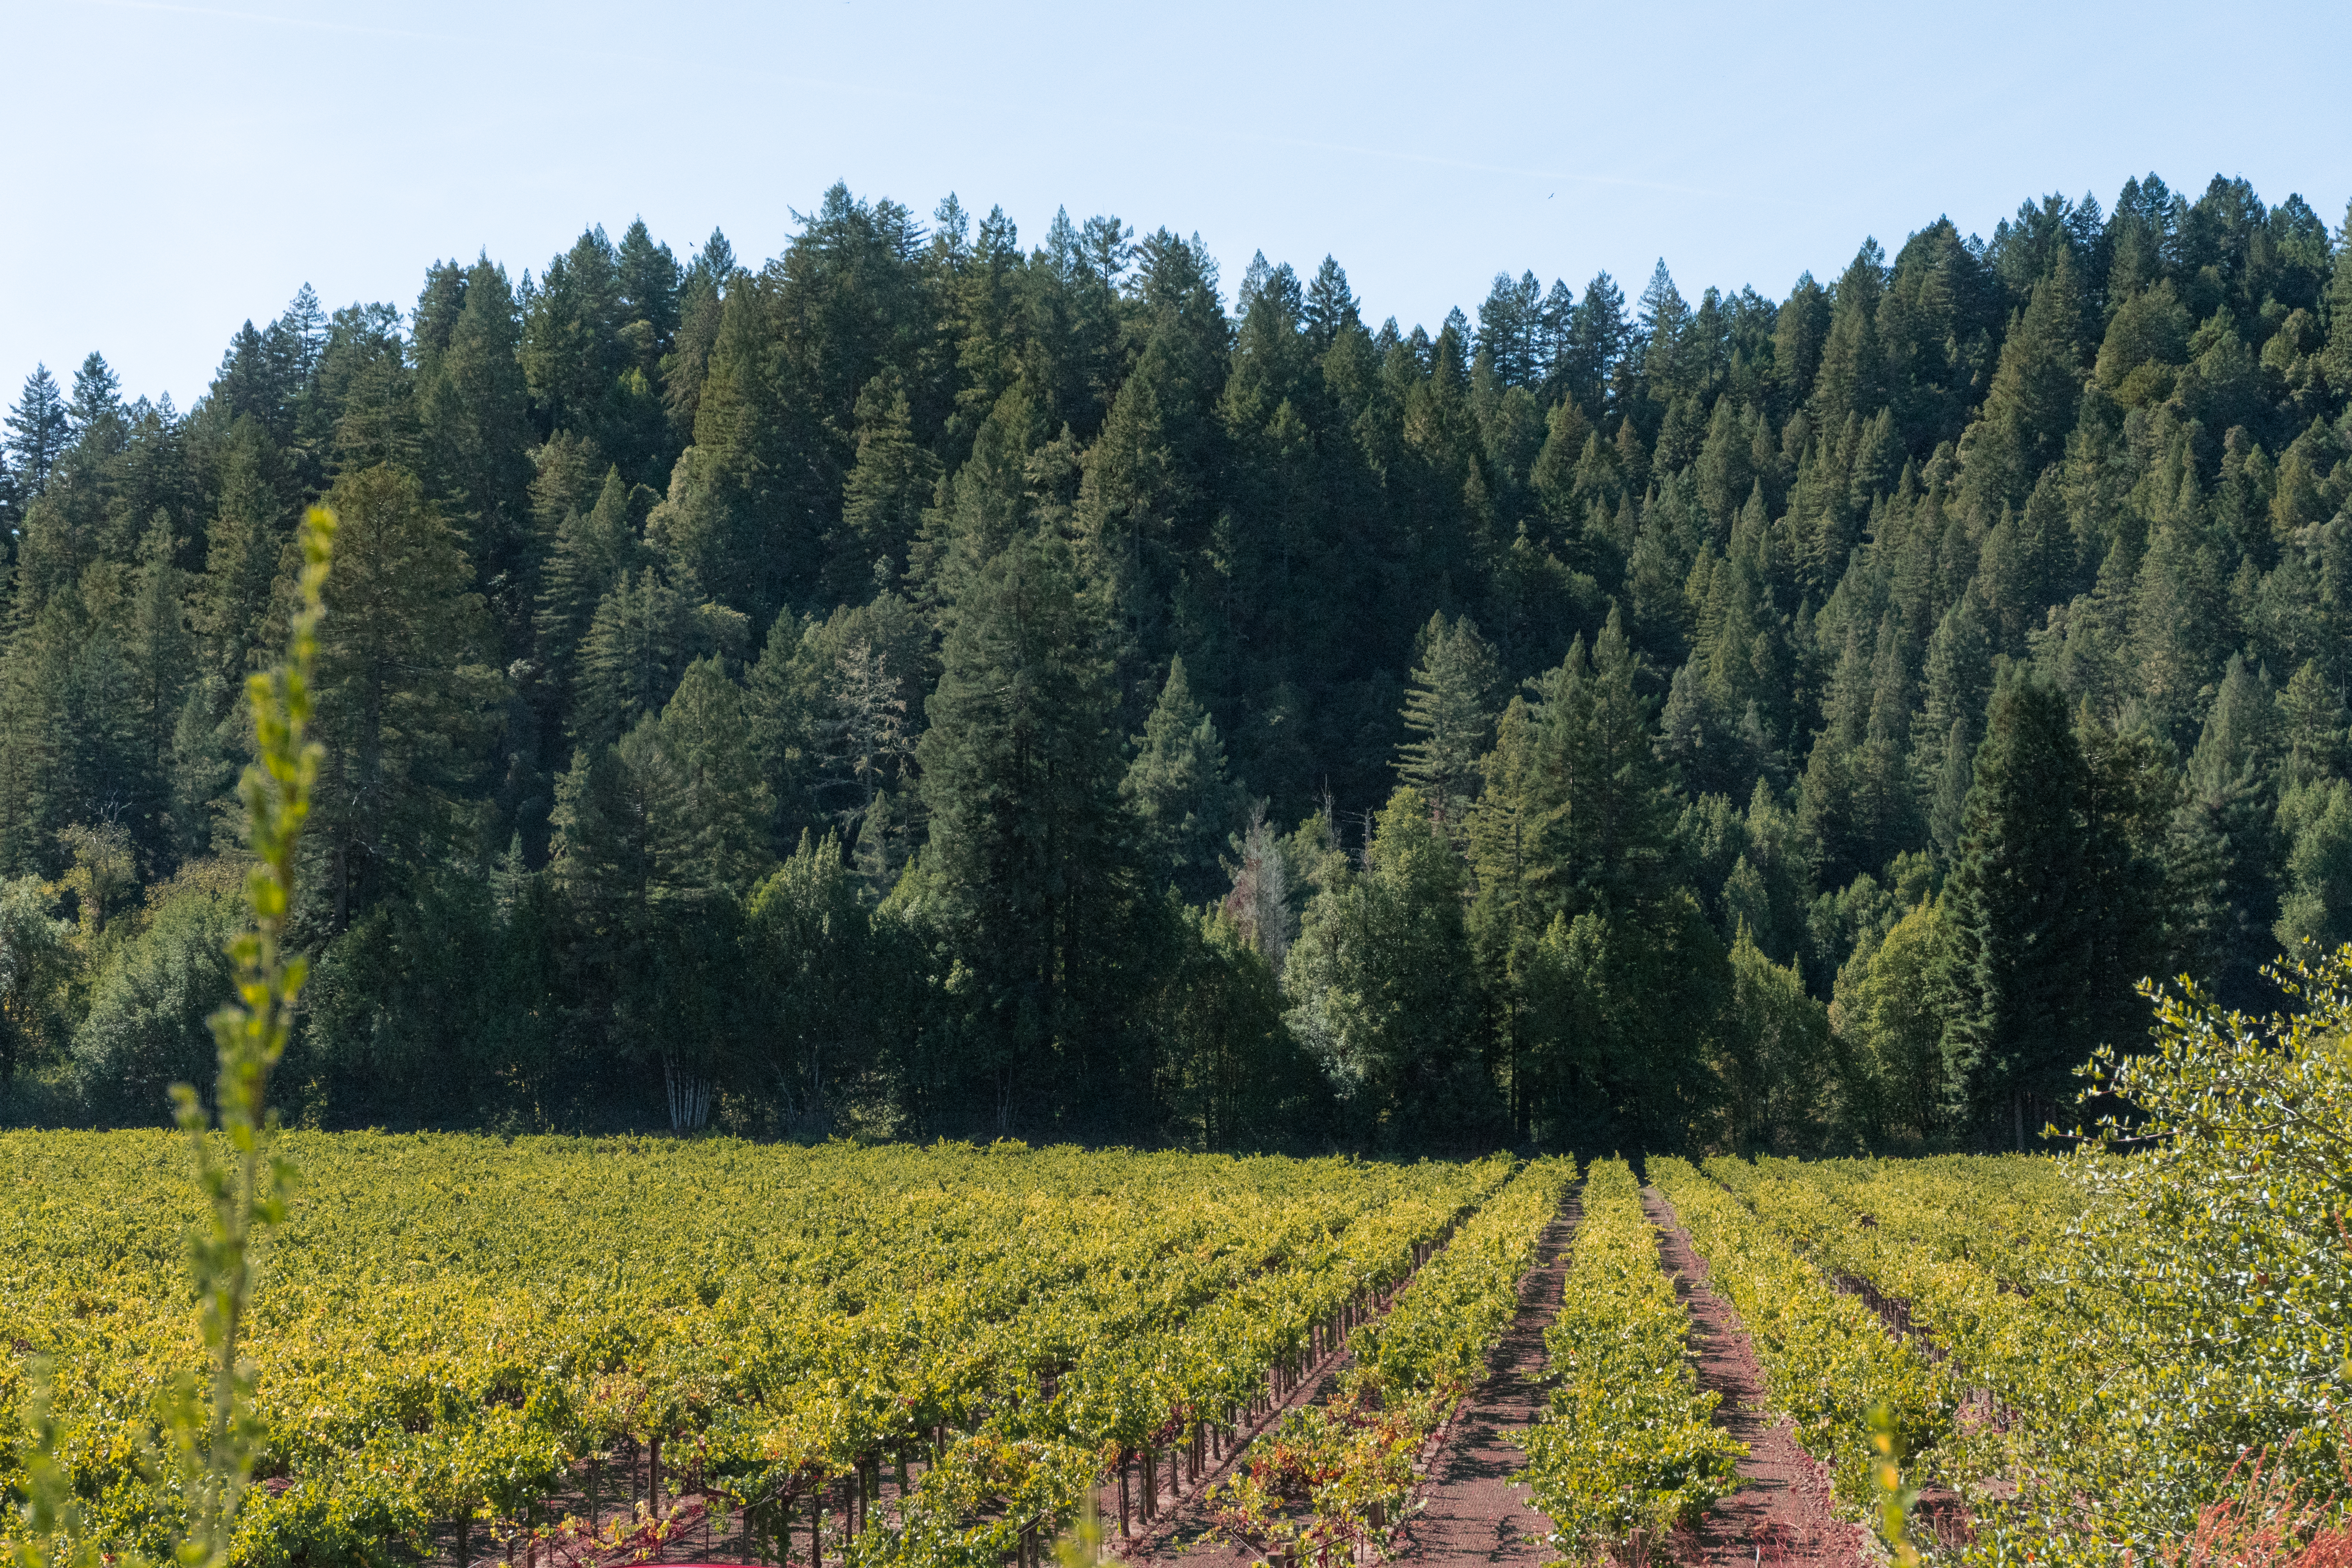 Enjoy a view of redwoods and vineyards, complimentary tastings, and a historical tour at Korbel in Sonoma County, California